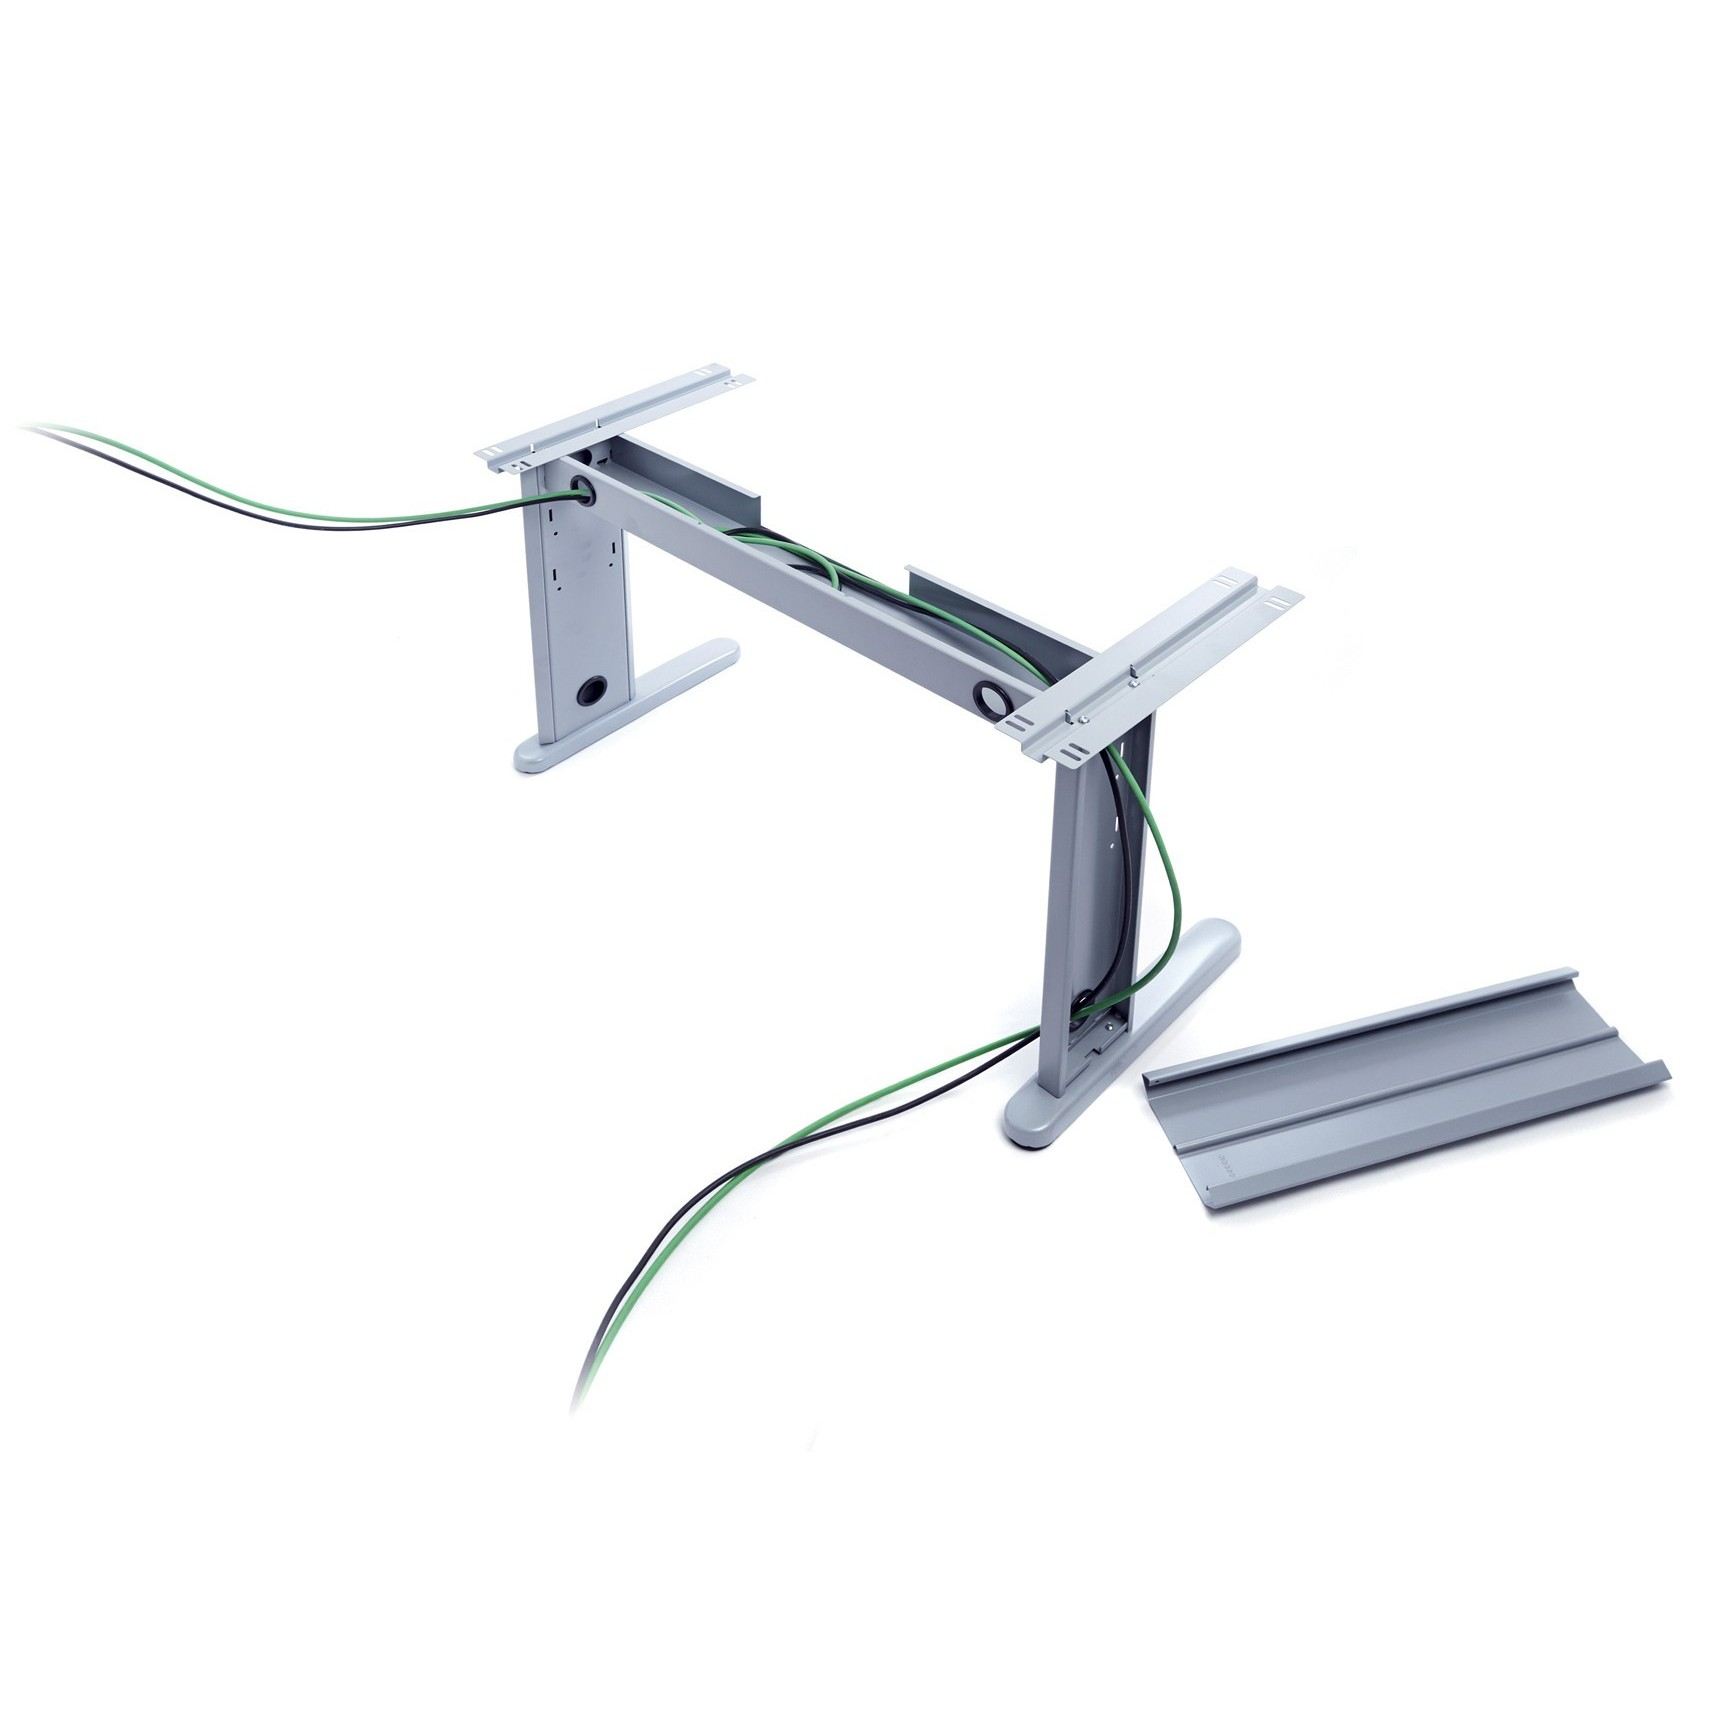 TABLE DE OFFICE SERIES METAL L SHAPE RIGHT 160X120 ALUMINUM/BEECH (THE FOOT COLUMN REFERENCE 2945 NOT INCLUDED, YOU BUY